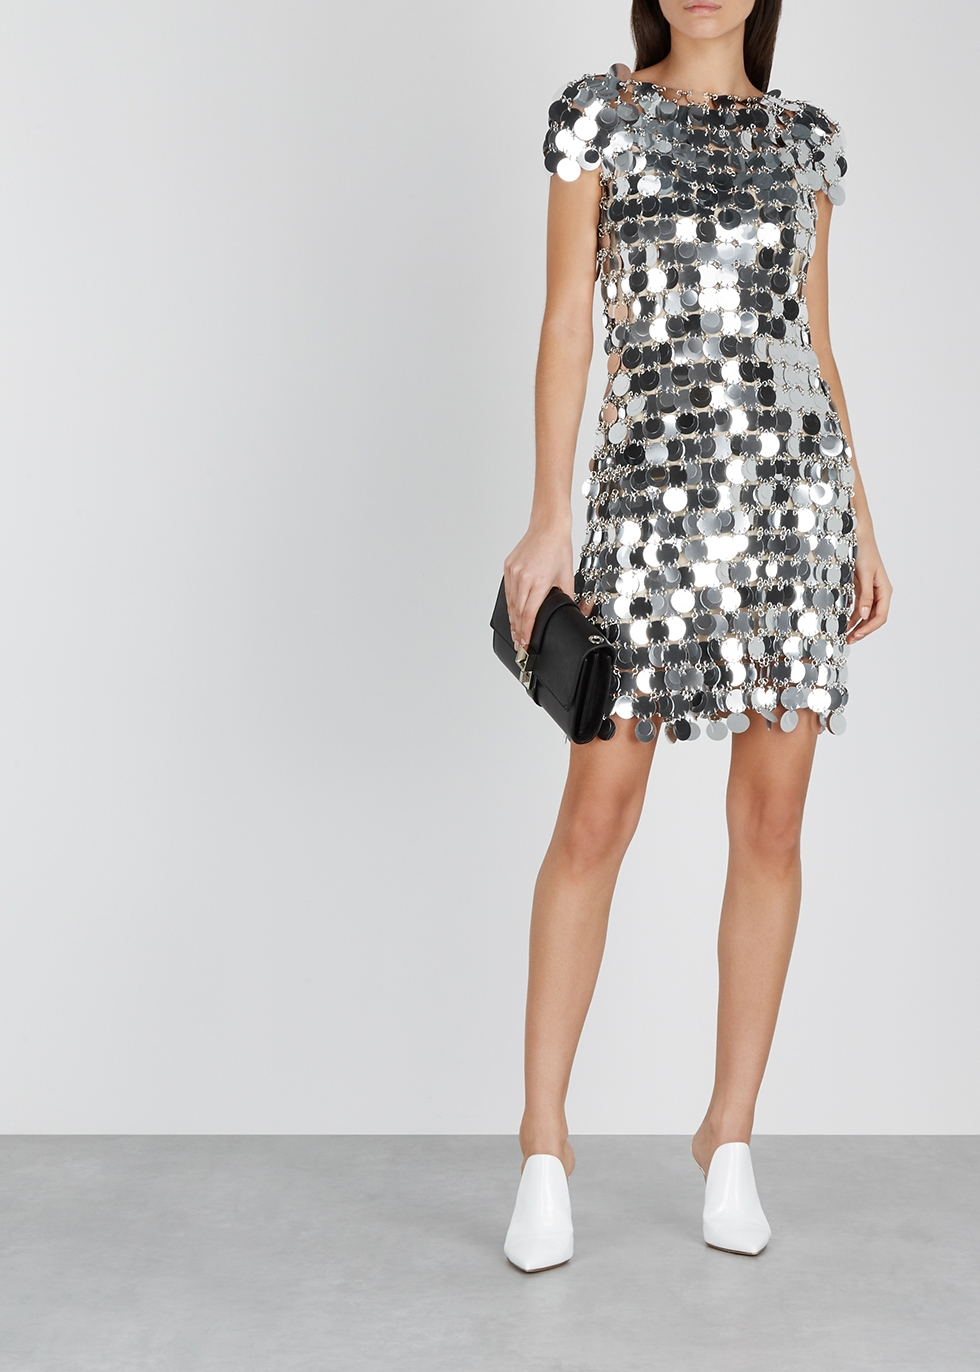 Silver chainmail mini dress - Paco Rabanne